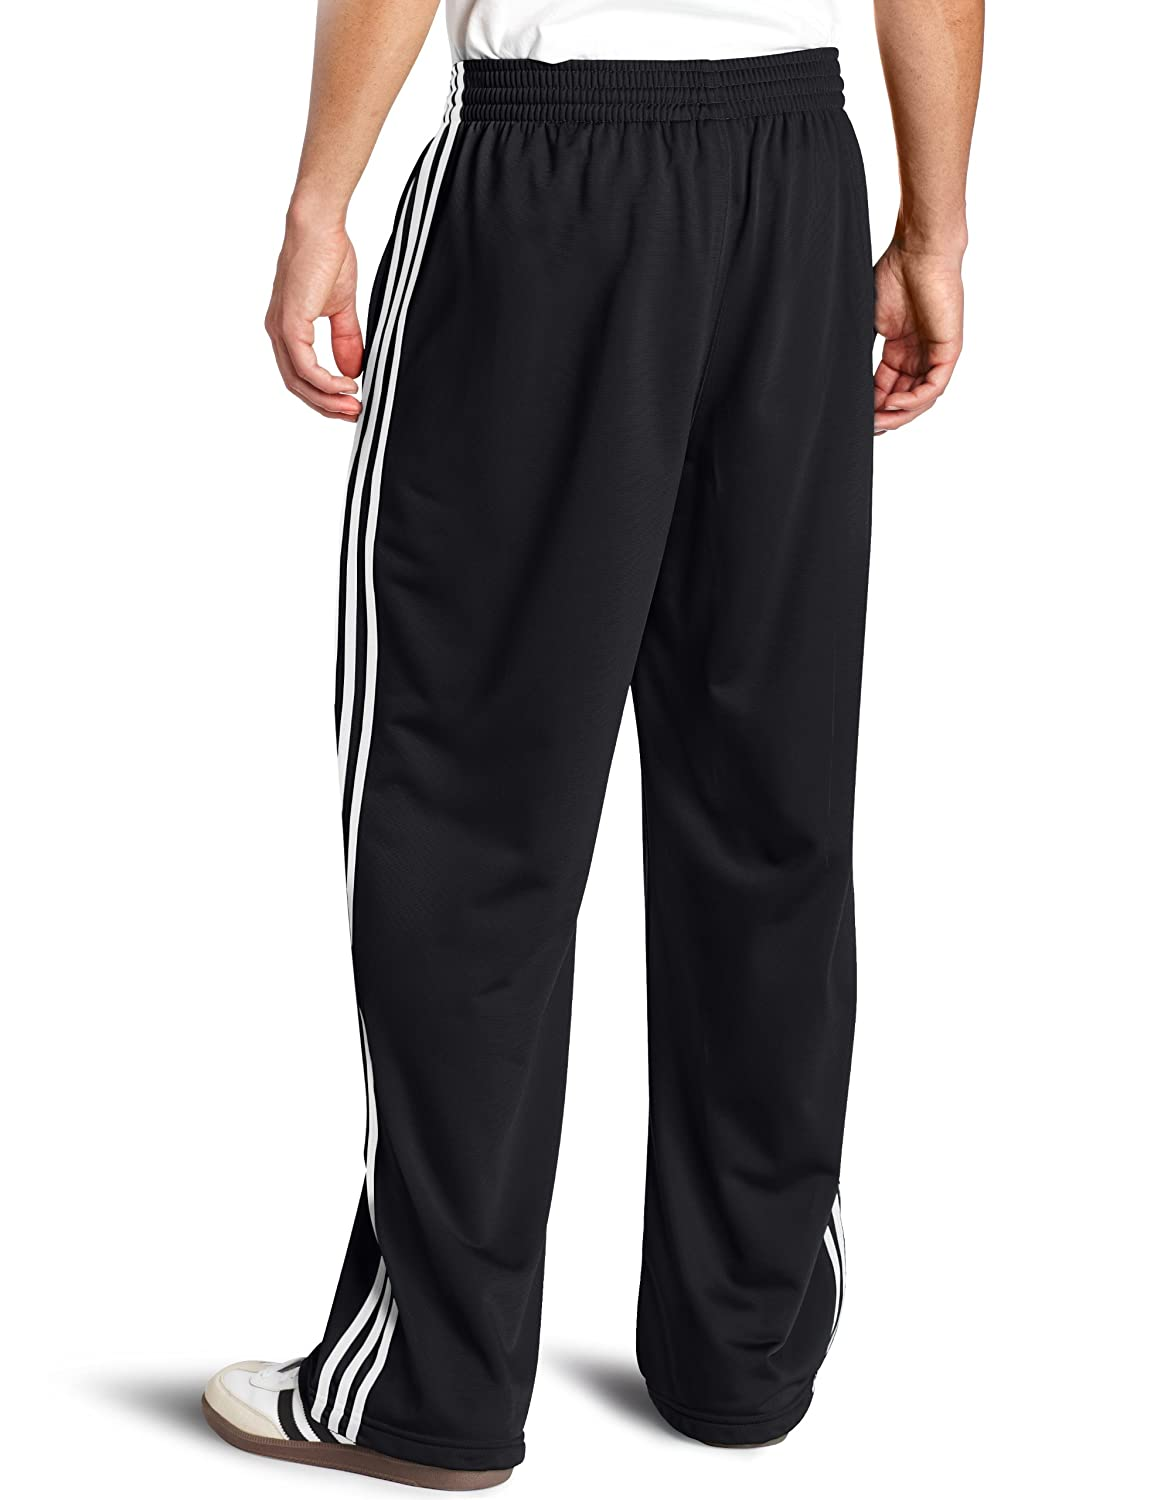 adidas sweat pants rn# 88387, Adidas shoes 2016 neo series